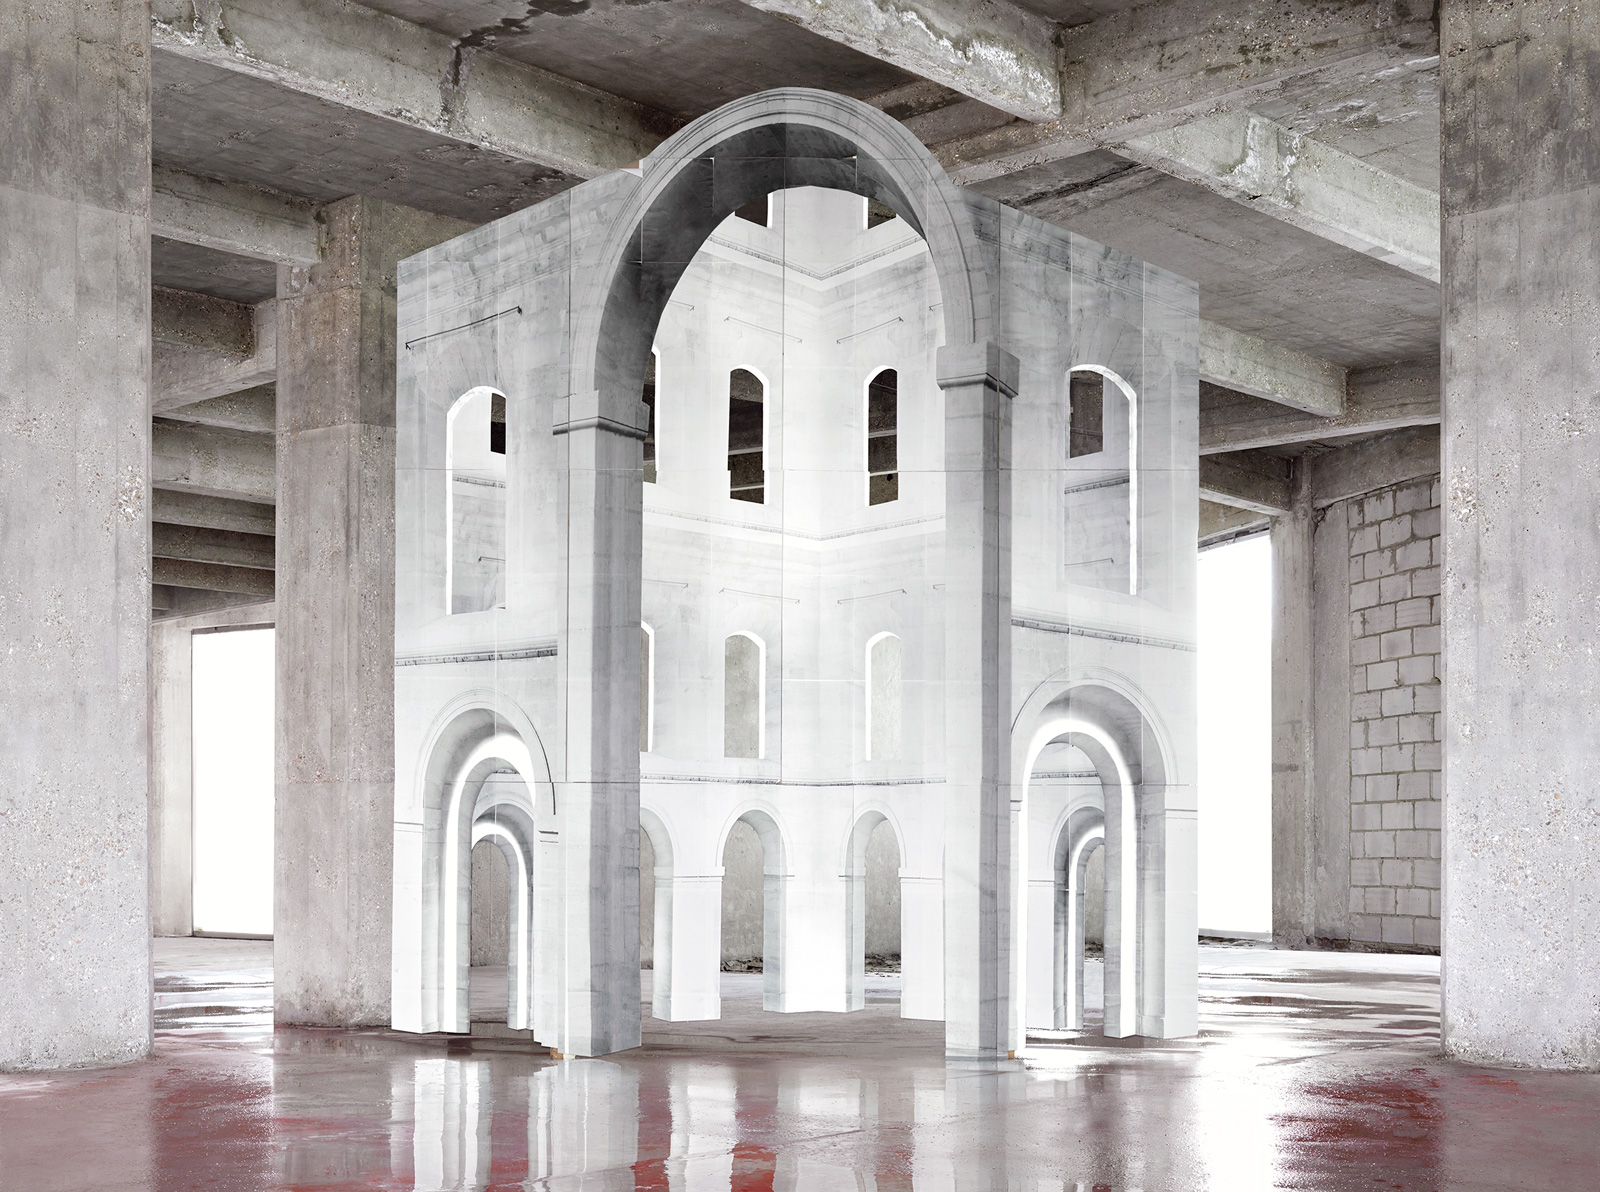 In Search of the First Line III (c) Noemie Goudal. Courtesy Edel Assanti, London